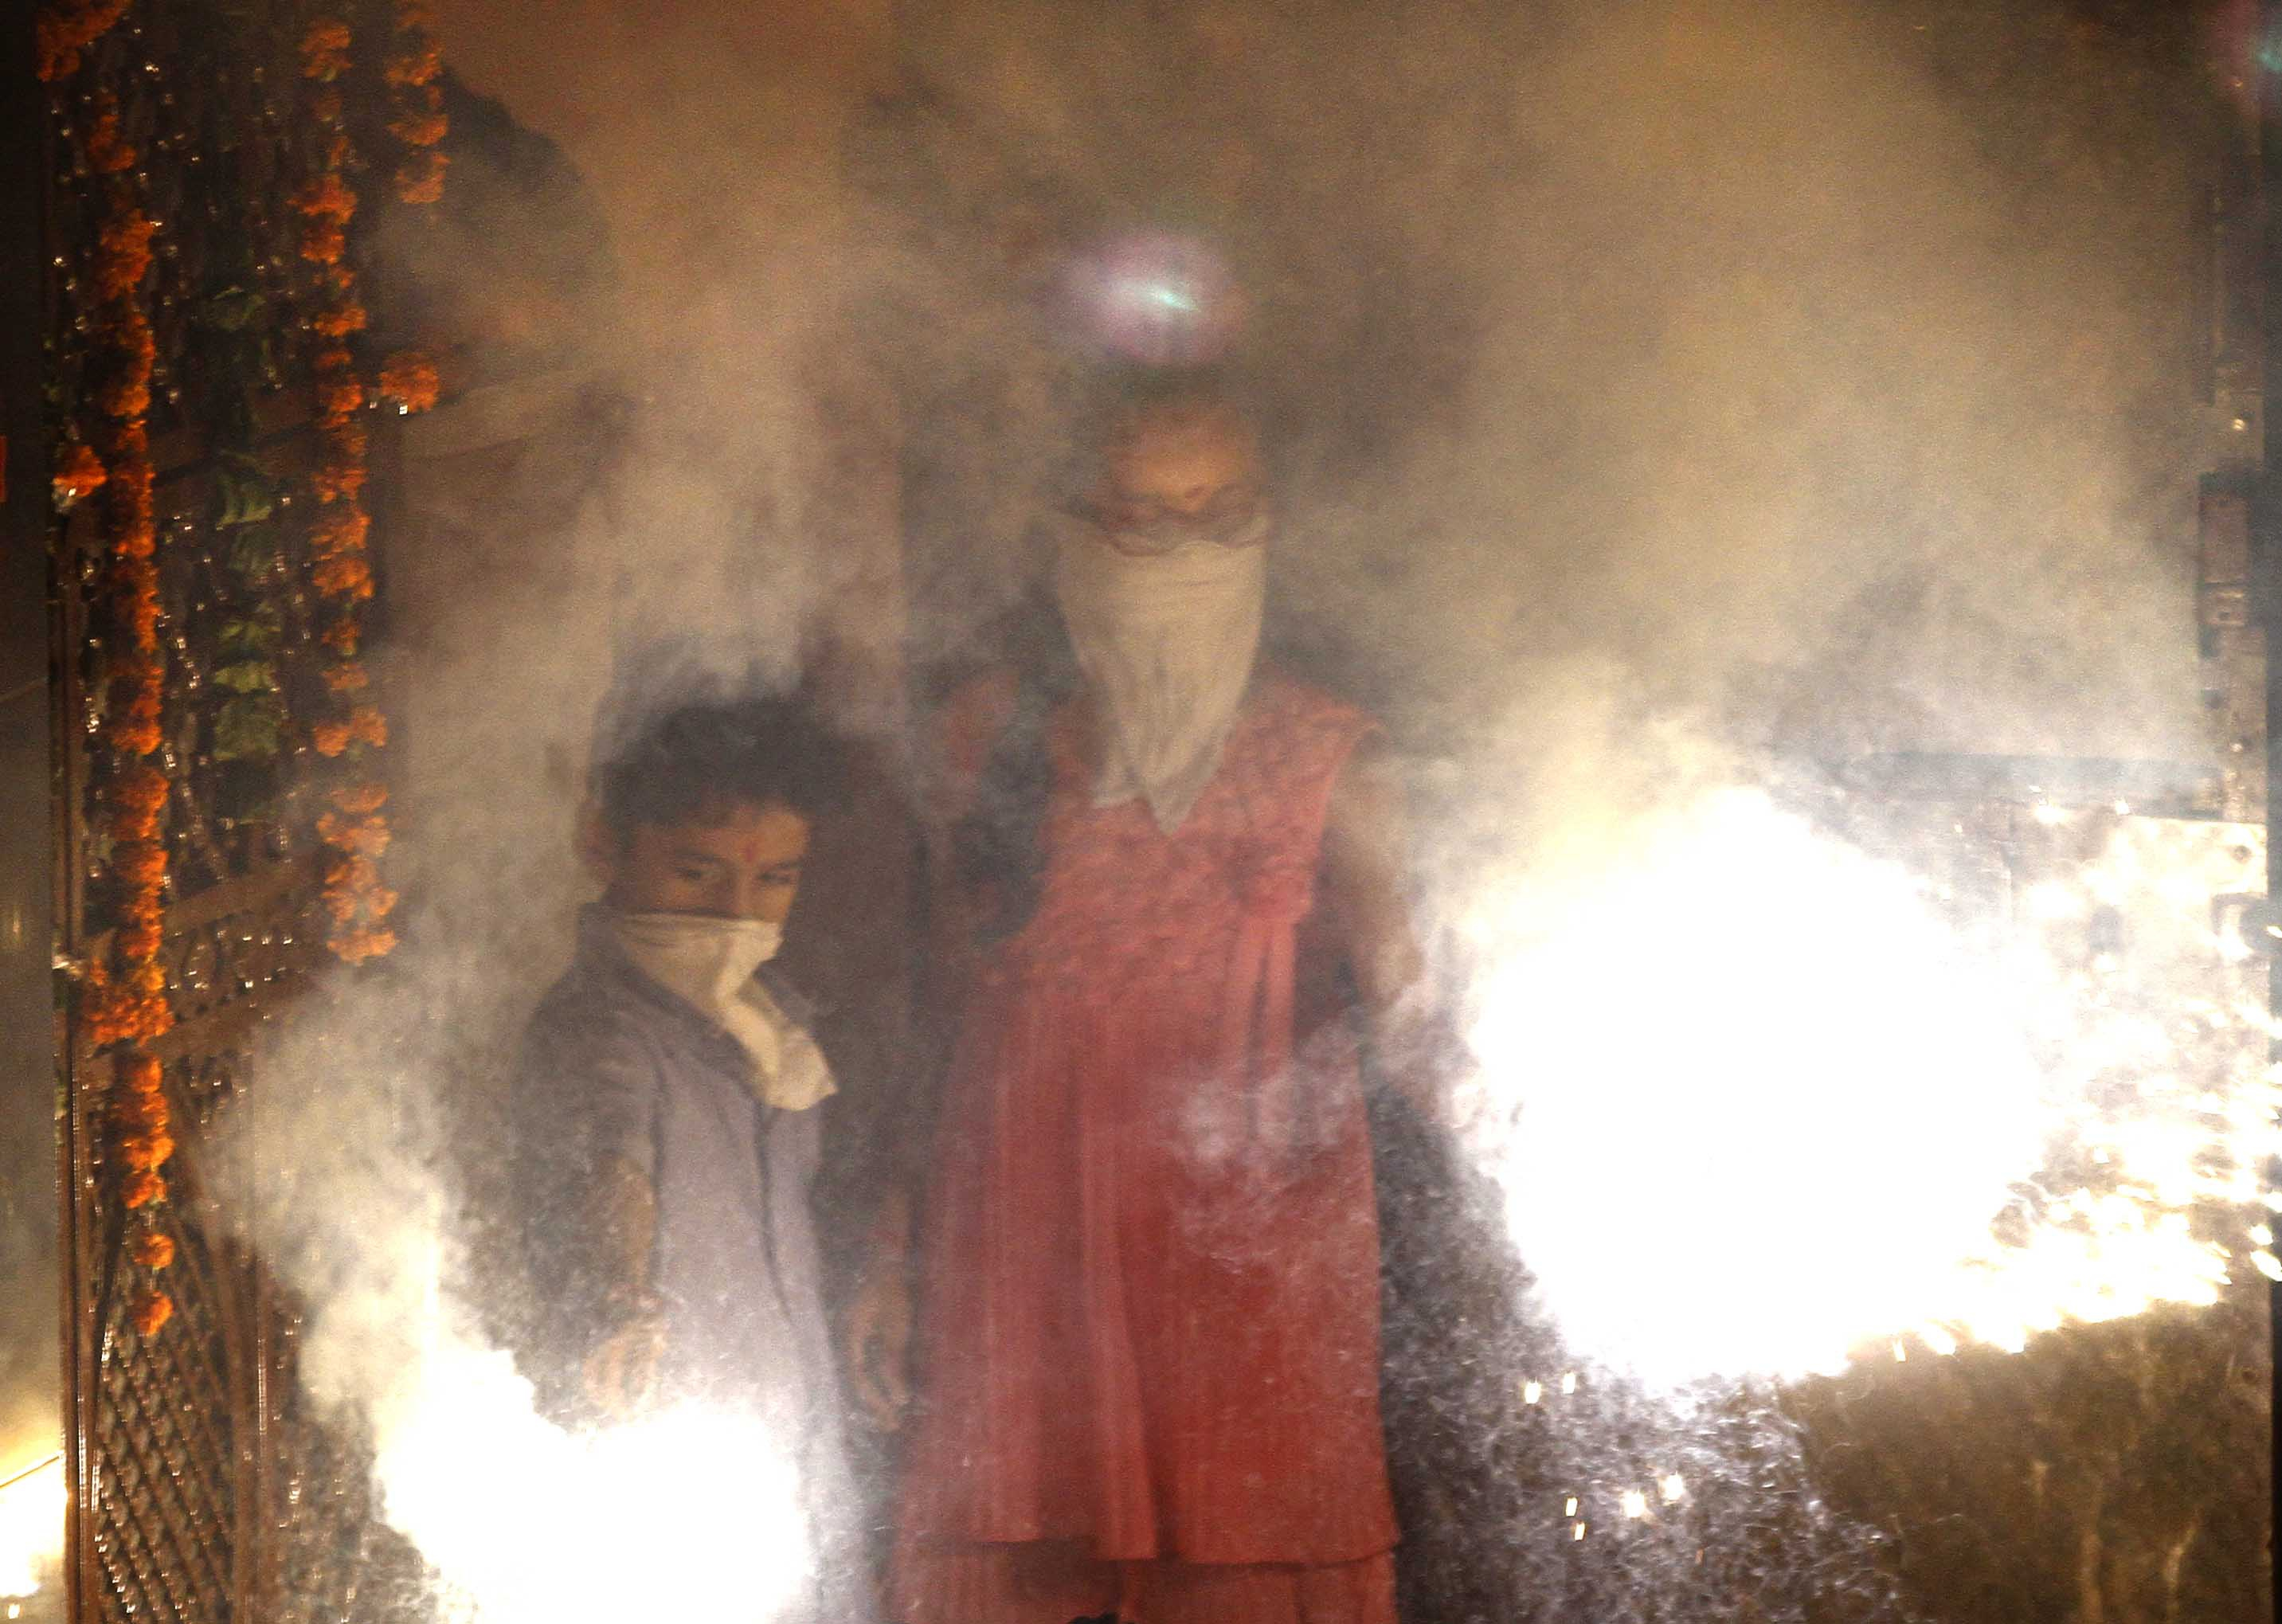 People bursting firecrackers as they celebrate Diwali, the Festival of Light, on Oct. 23, 2014, in New Delhi